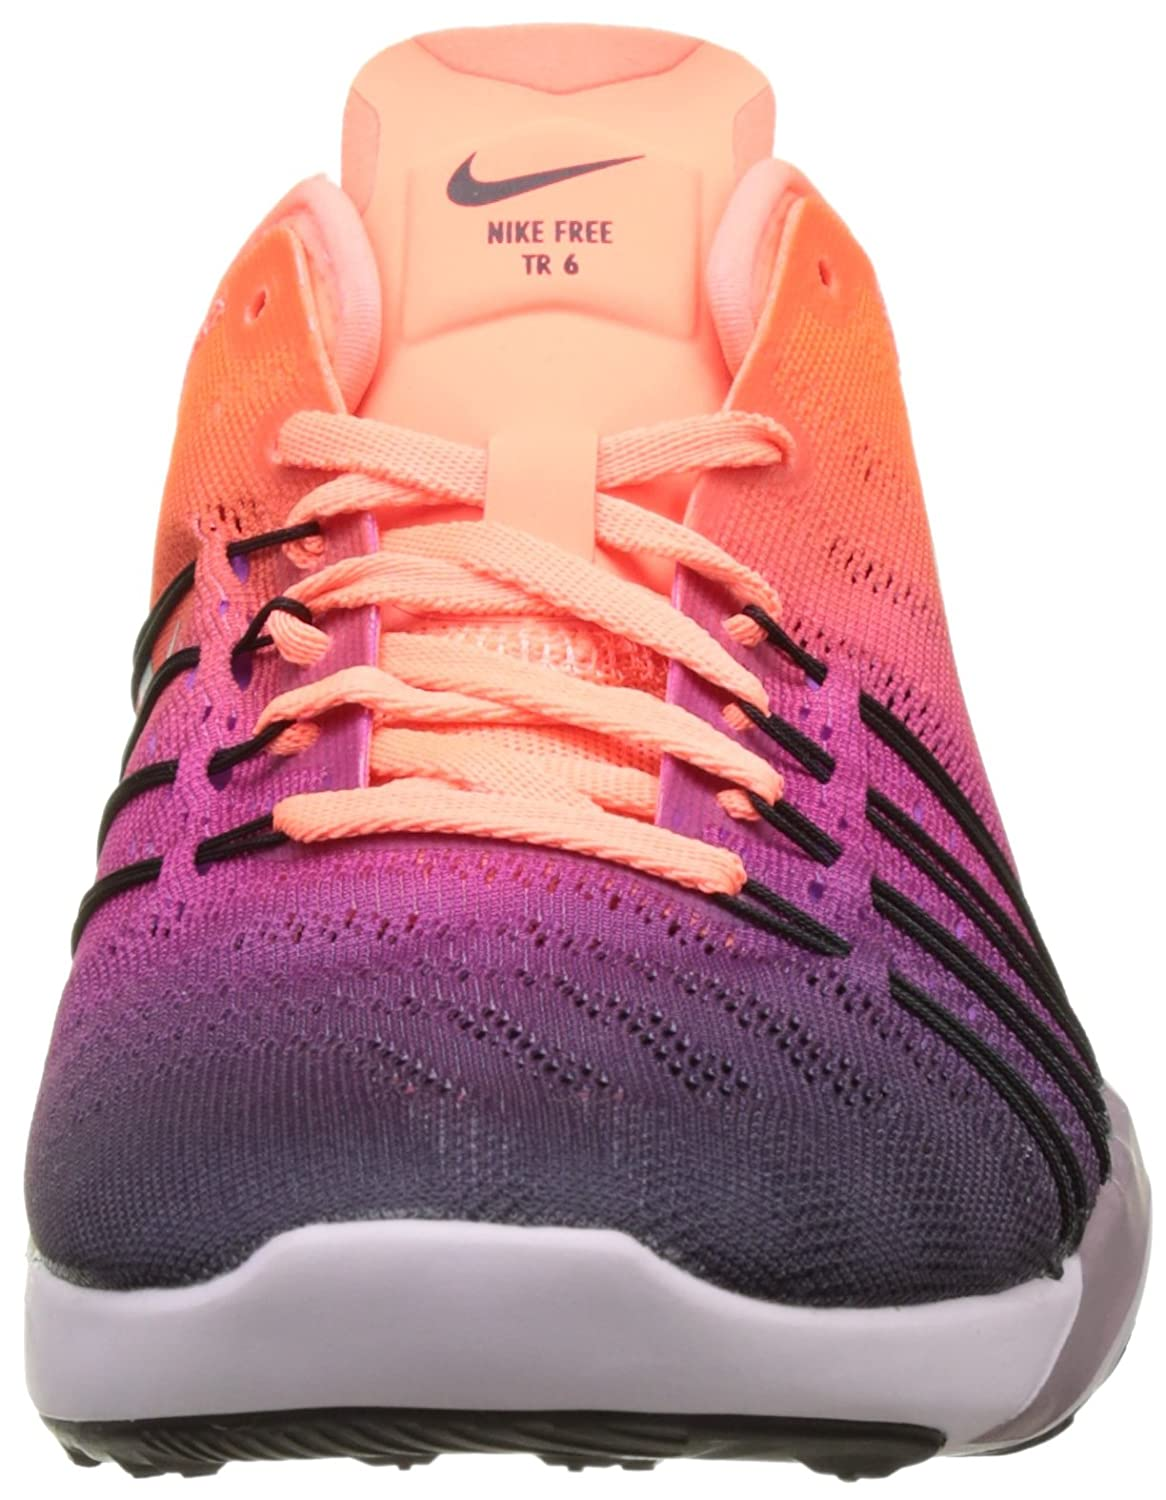 Nike Women's Free TR 6 Spectrum Cross Trainer: Amazon.ca: Shoes & Handbags